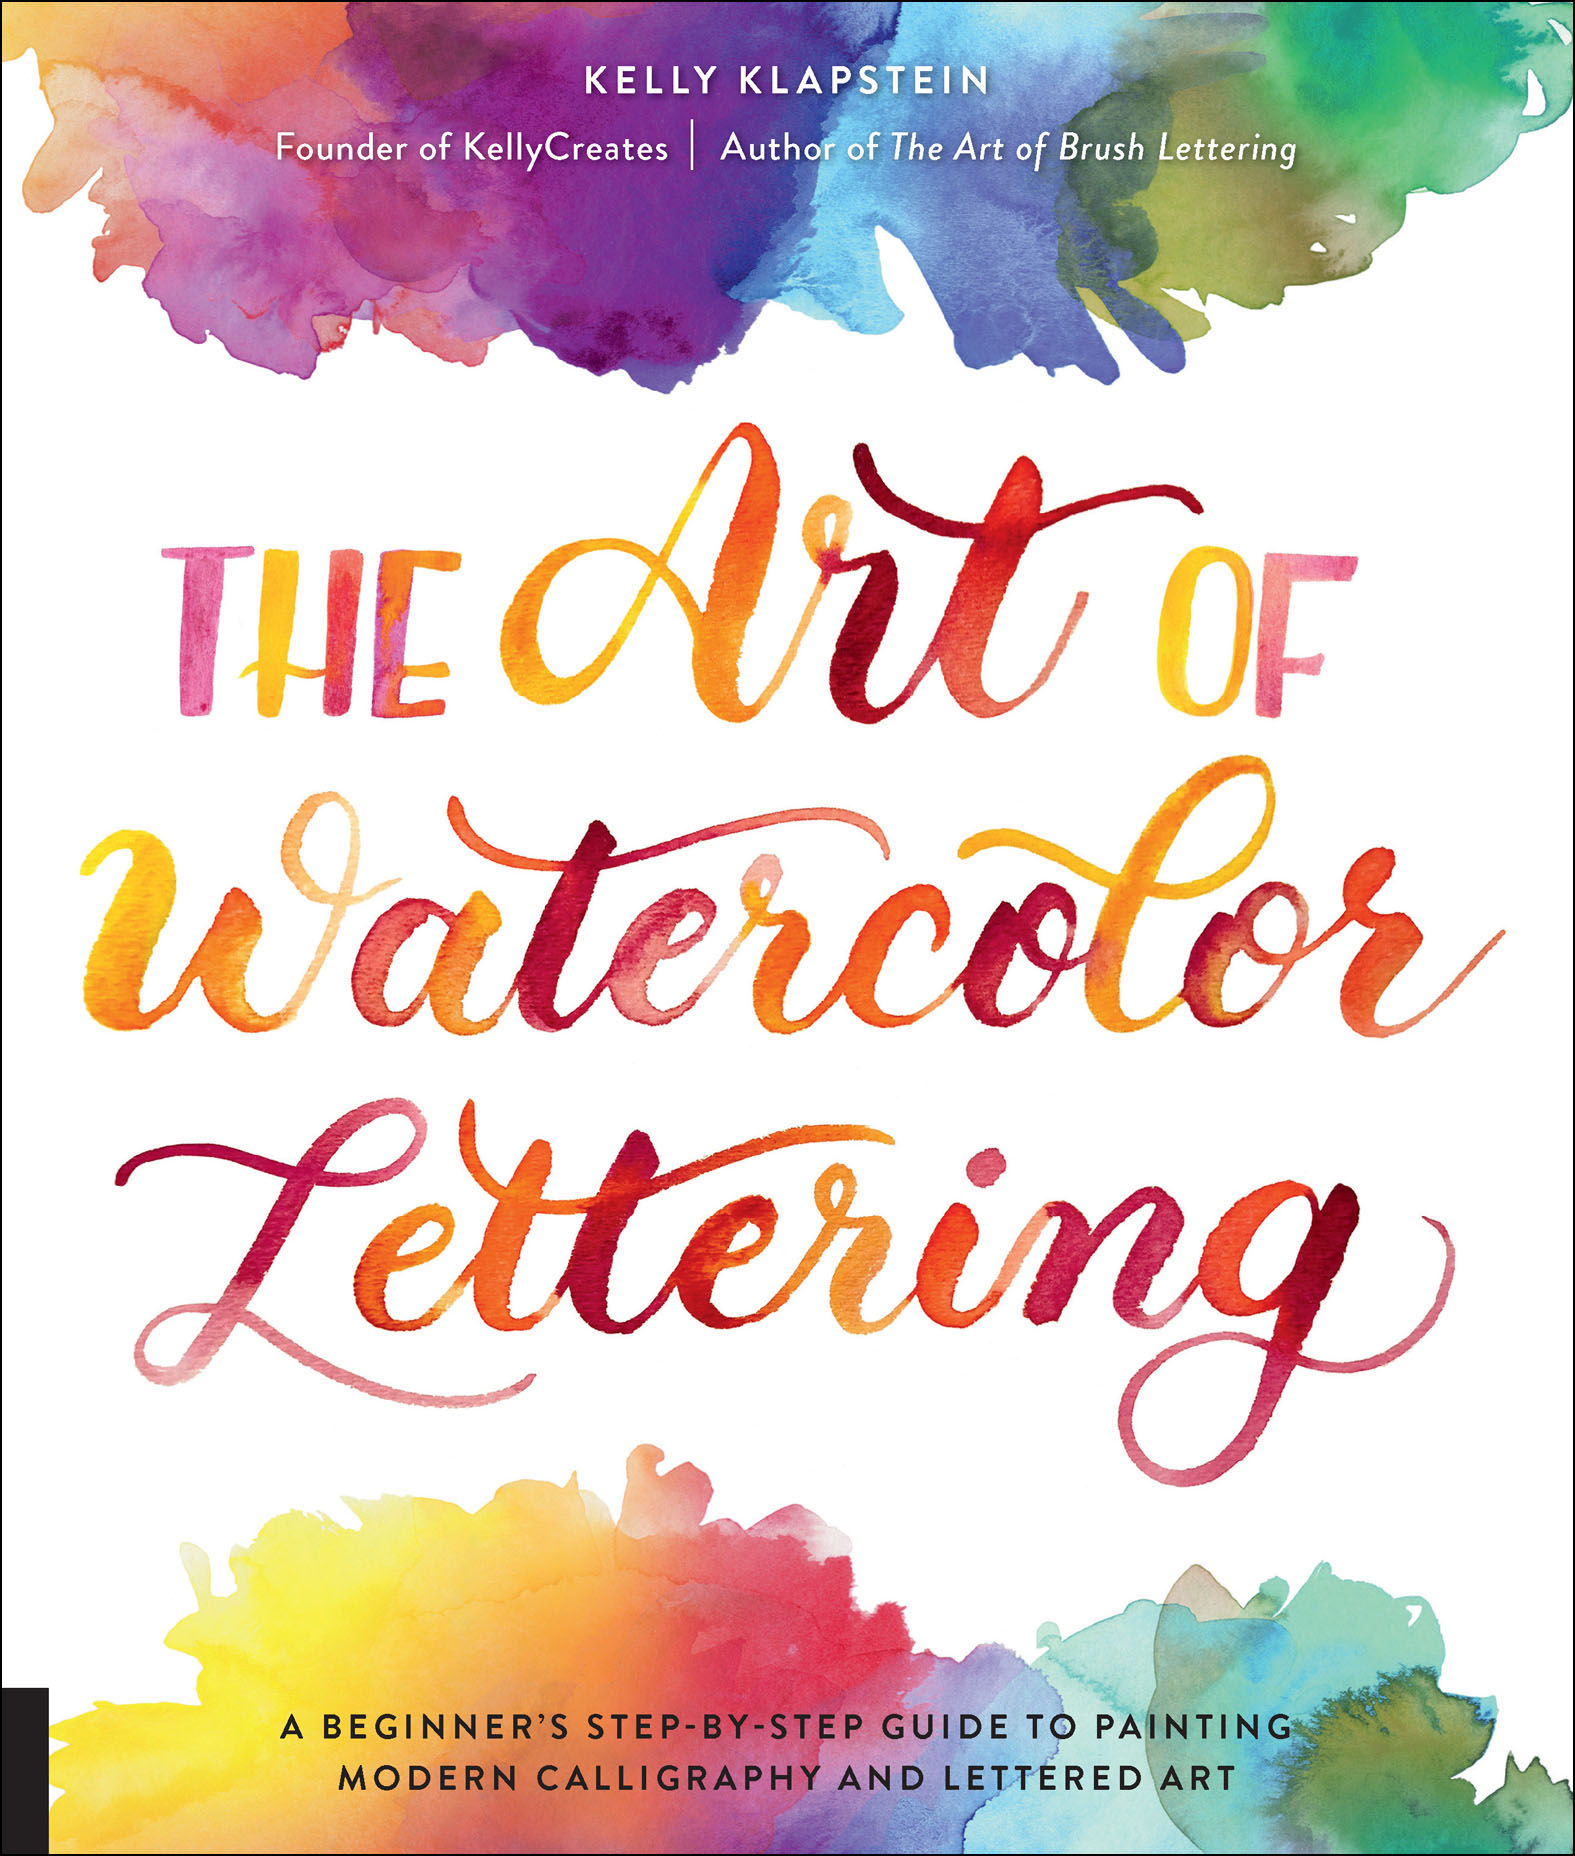 The Art of Watercolor Lettering A Beginner's Step-by-Step Guide to Painting Modern Calligraphy and Lettered Art